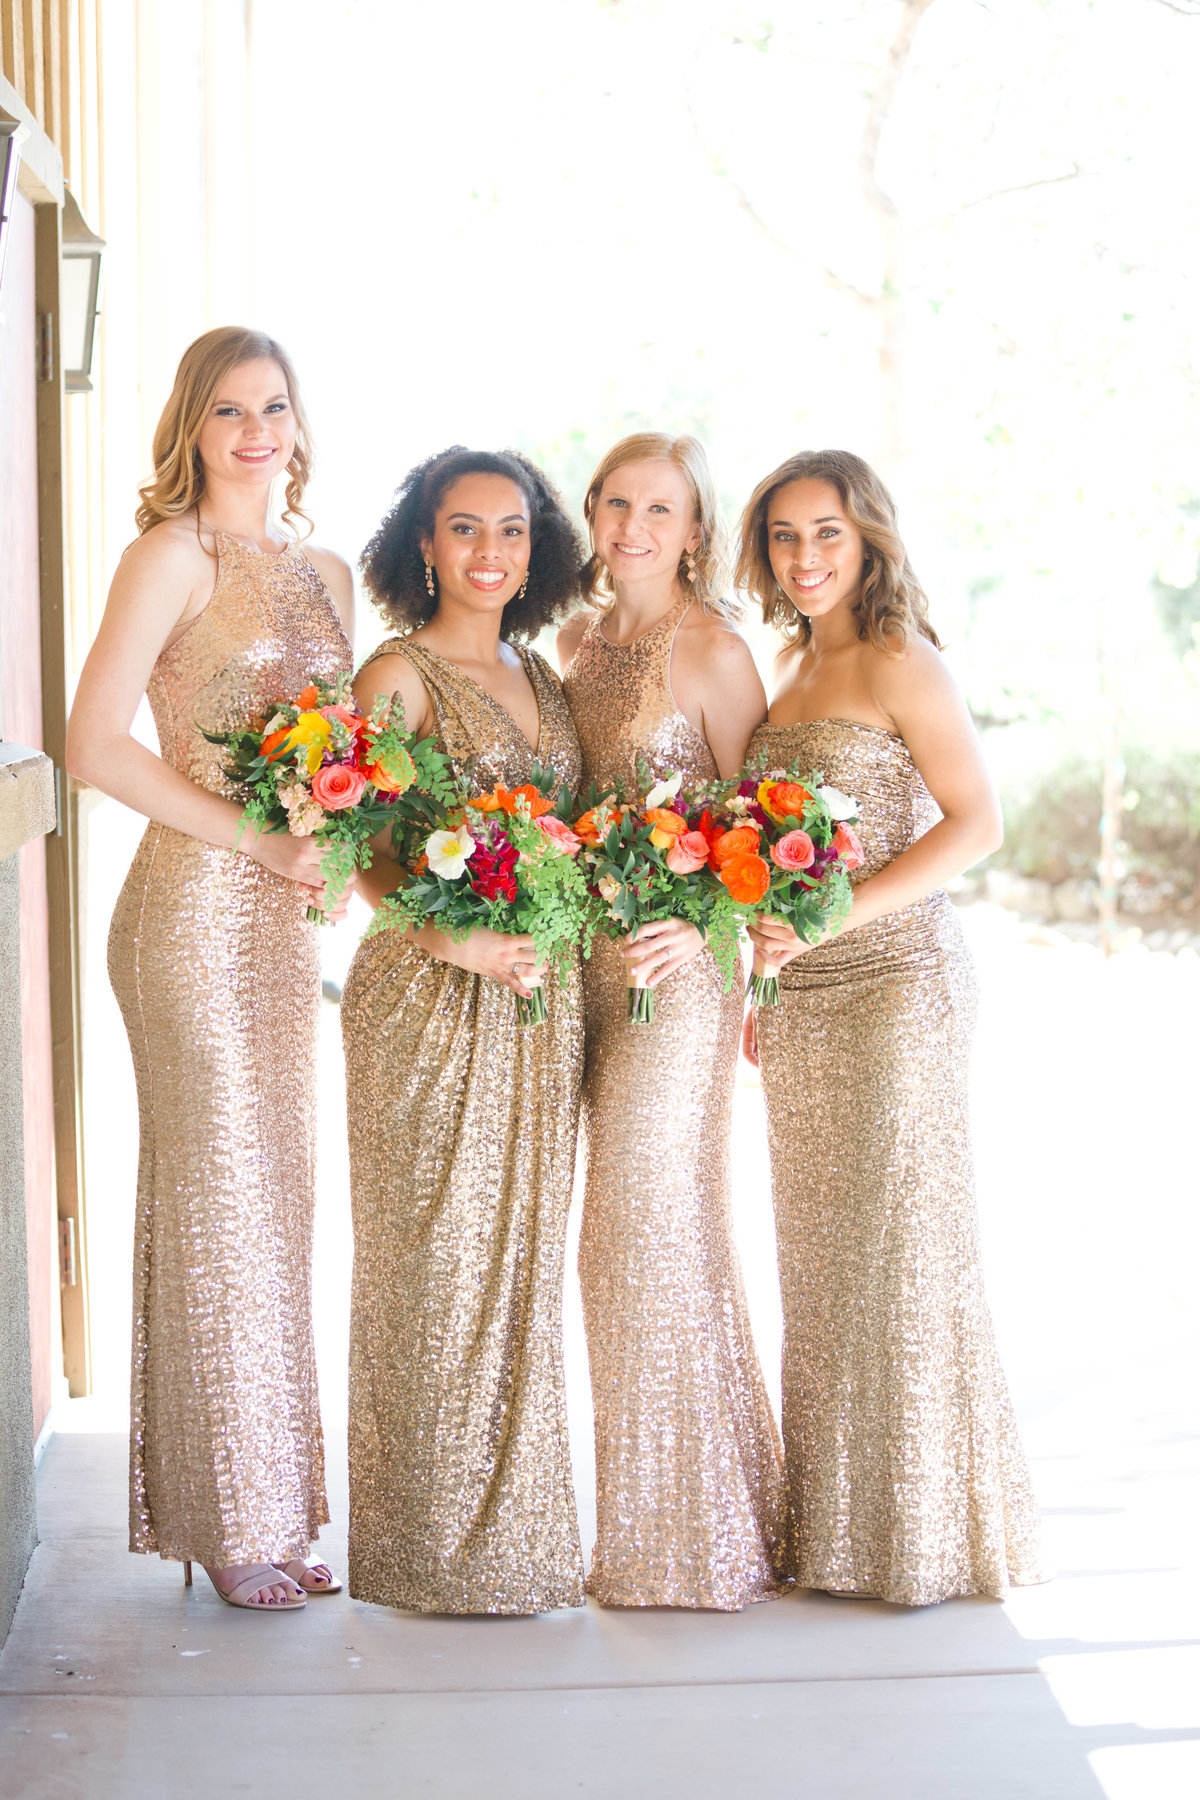 bridal party portrait in rose gold bridesmaids dresses